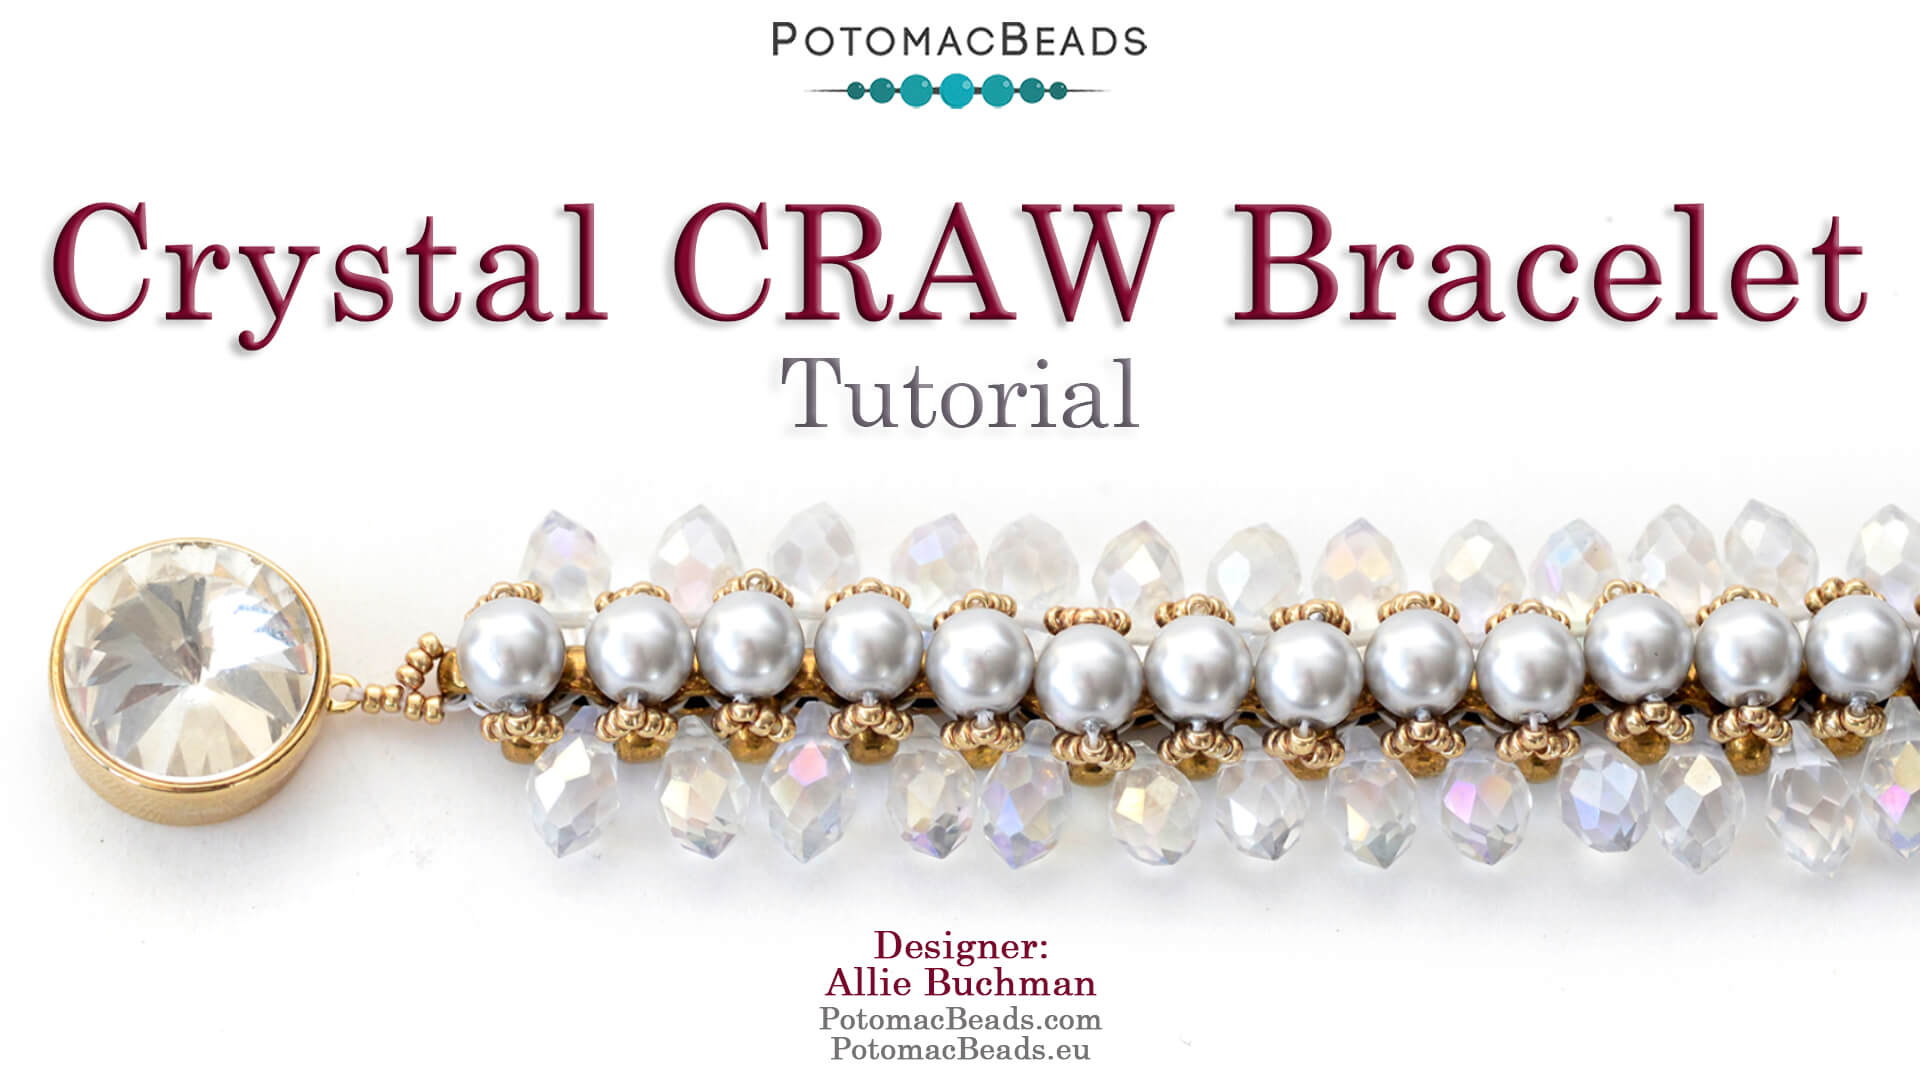 How to Bead Jewelry / Beading Tutorials & Jewel Making Videos / Right Angle Weave (RAW) Videos / Crystal Craw Bracelet Tutorial